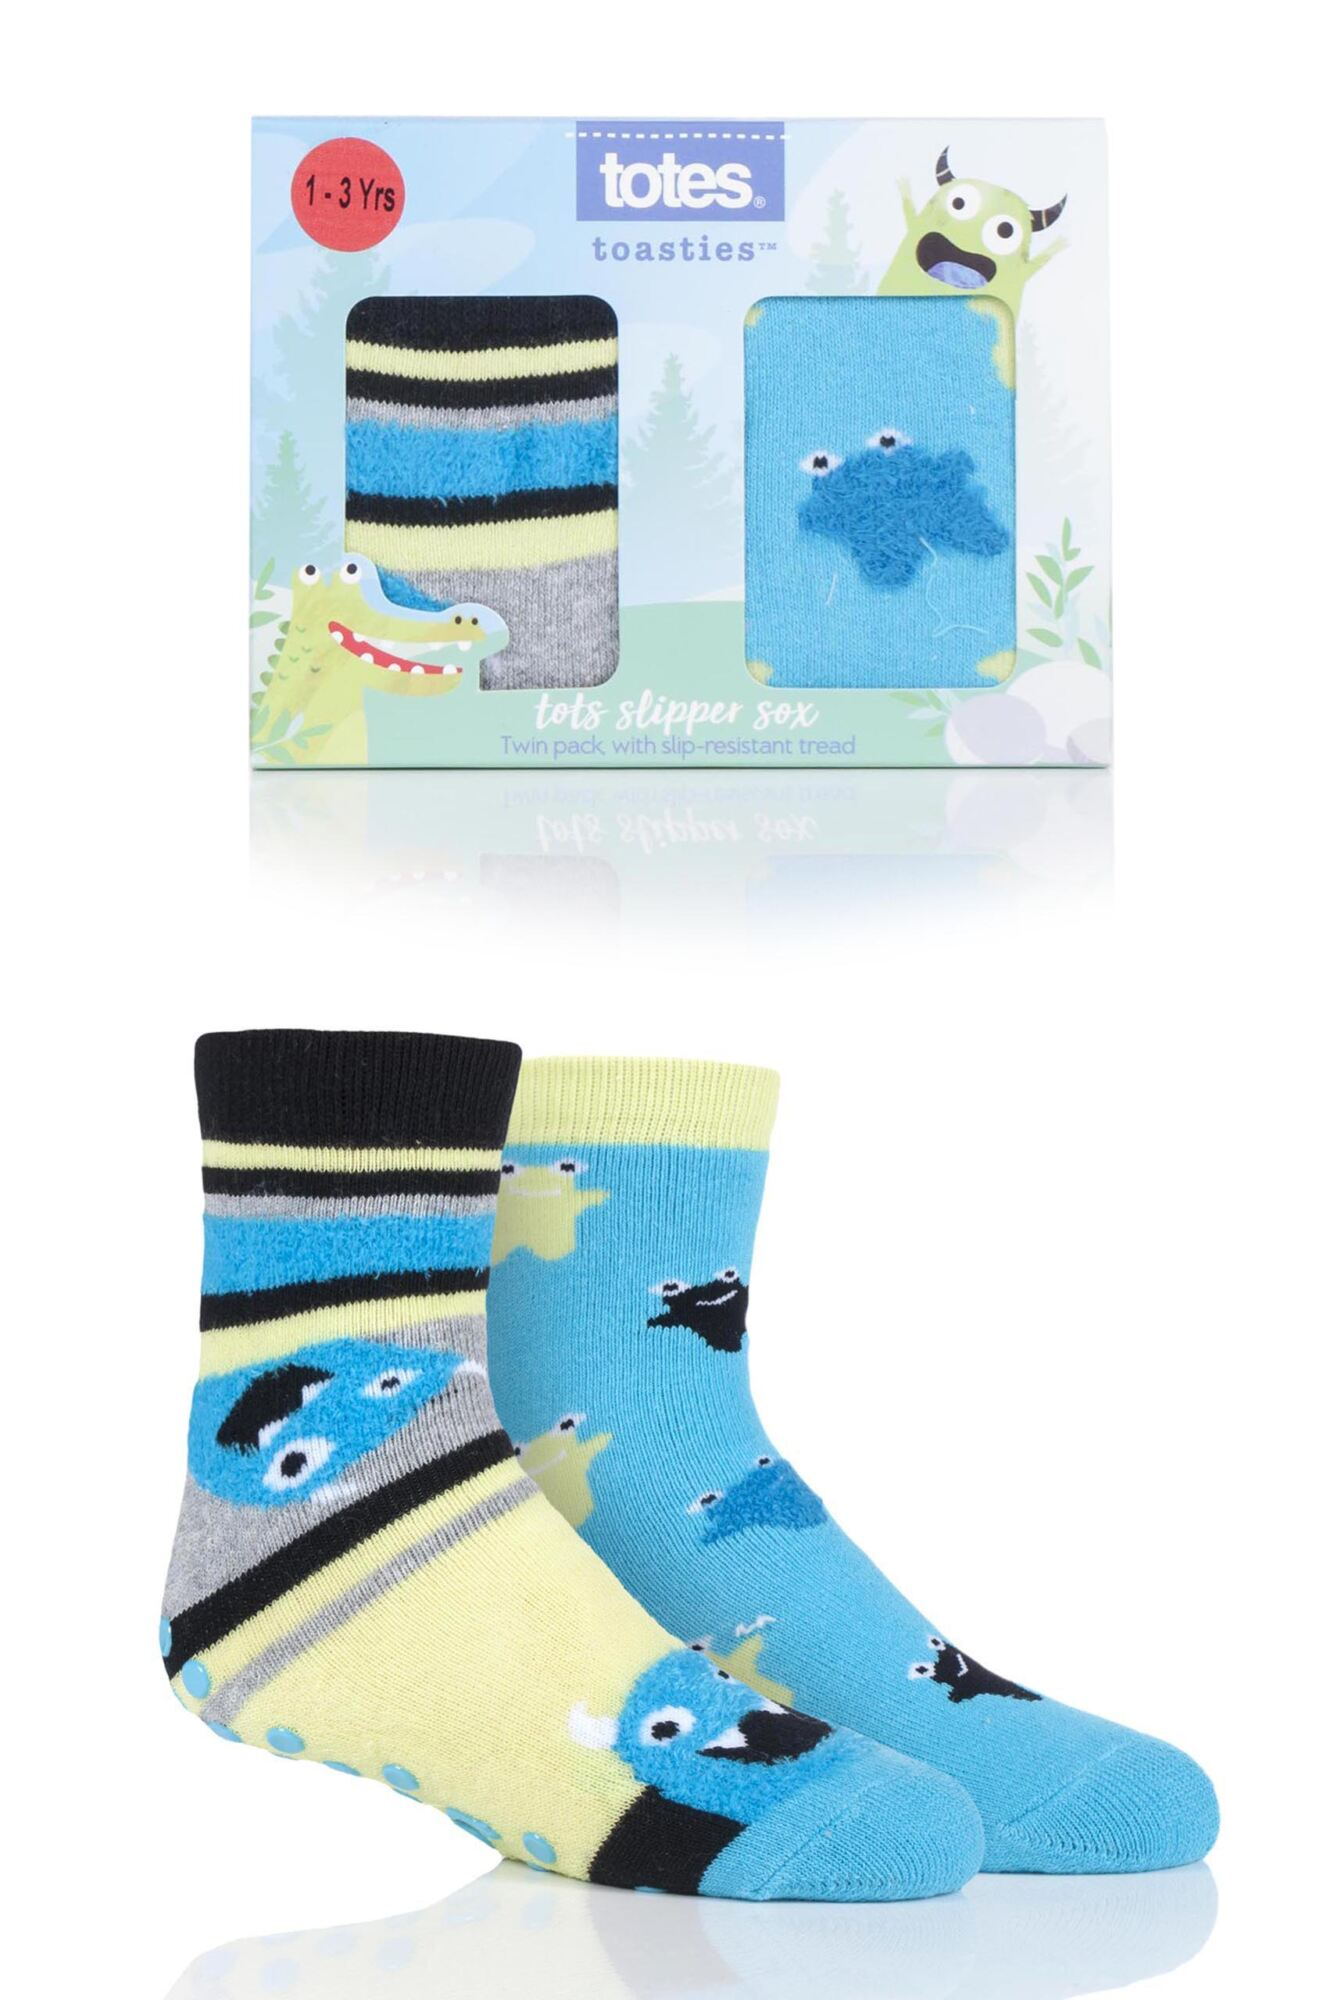 2 Pair Tots Originals Novelty Slipper Socks Boys - Totes